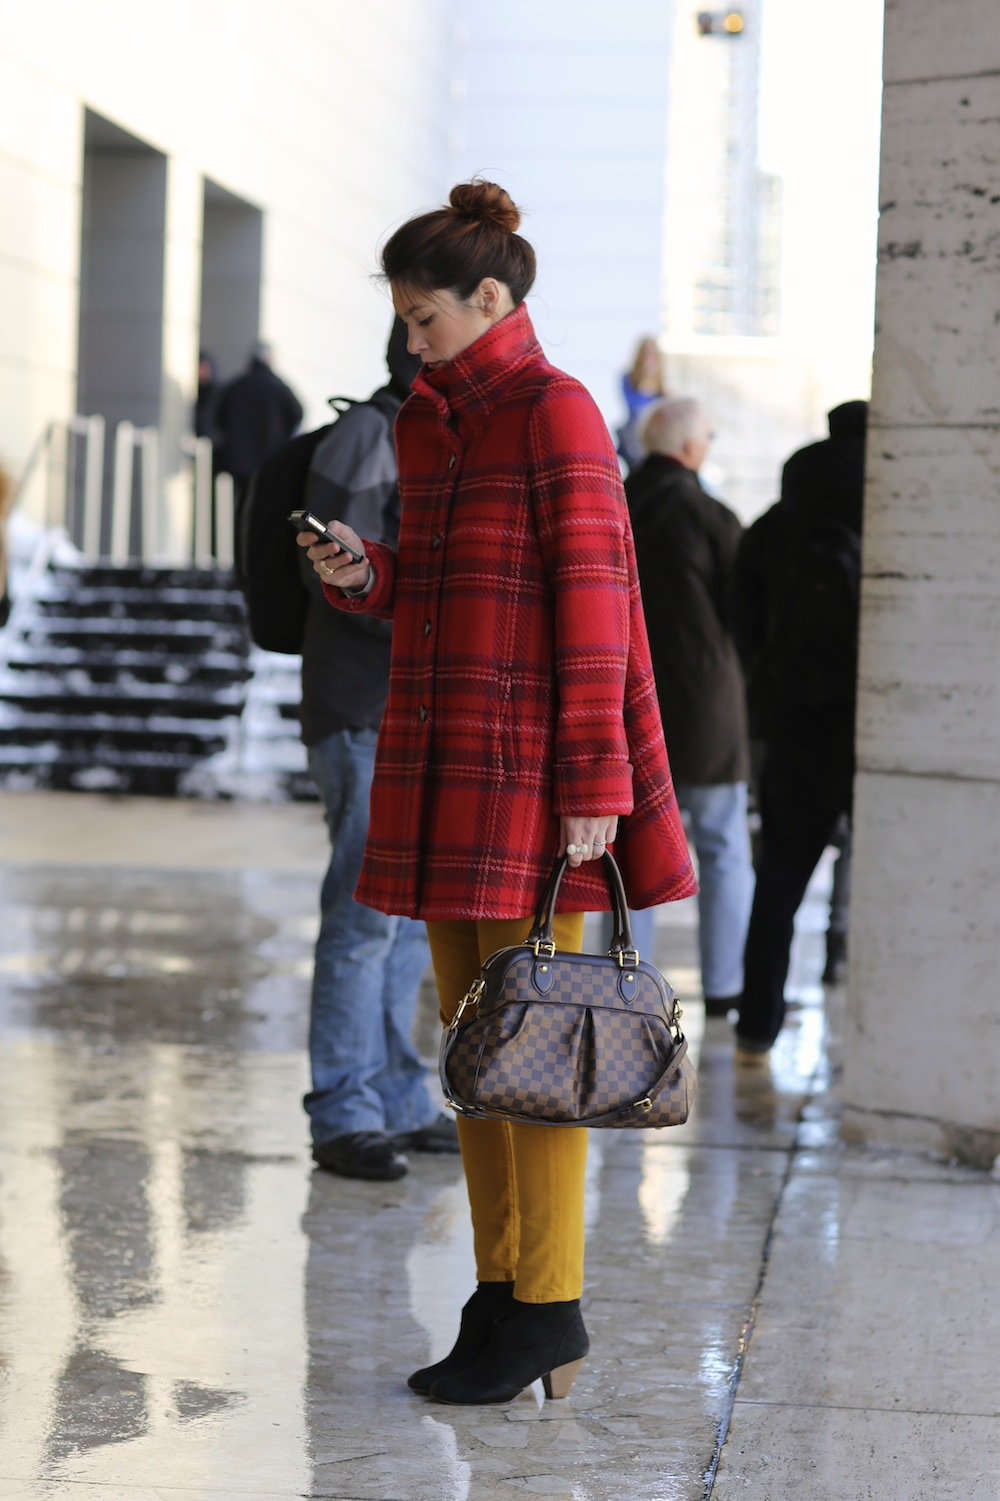 Street Style Fashion Outerwear Shoes Fashables